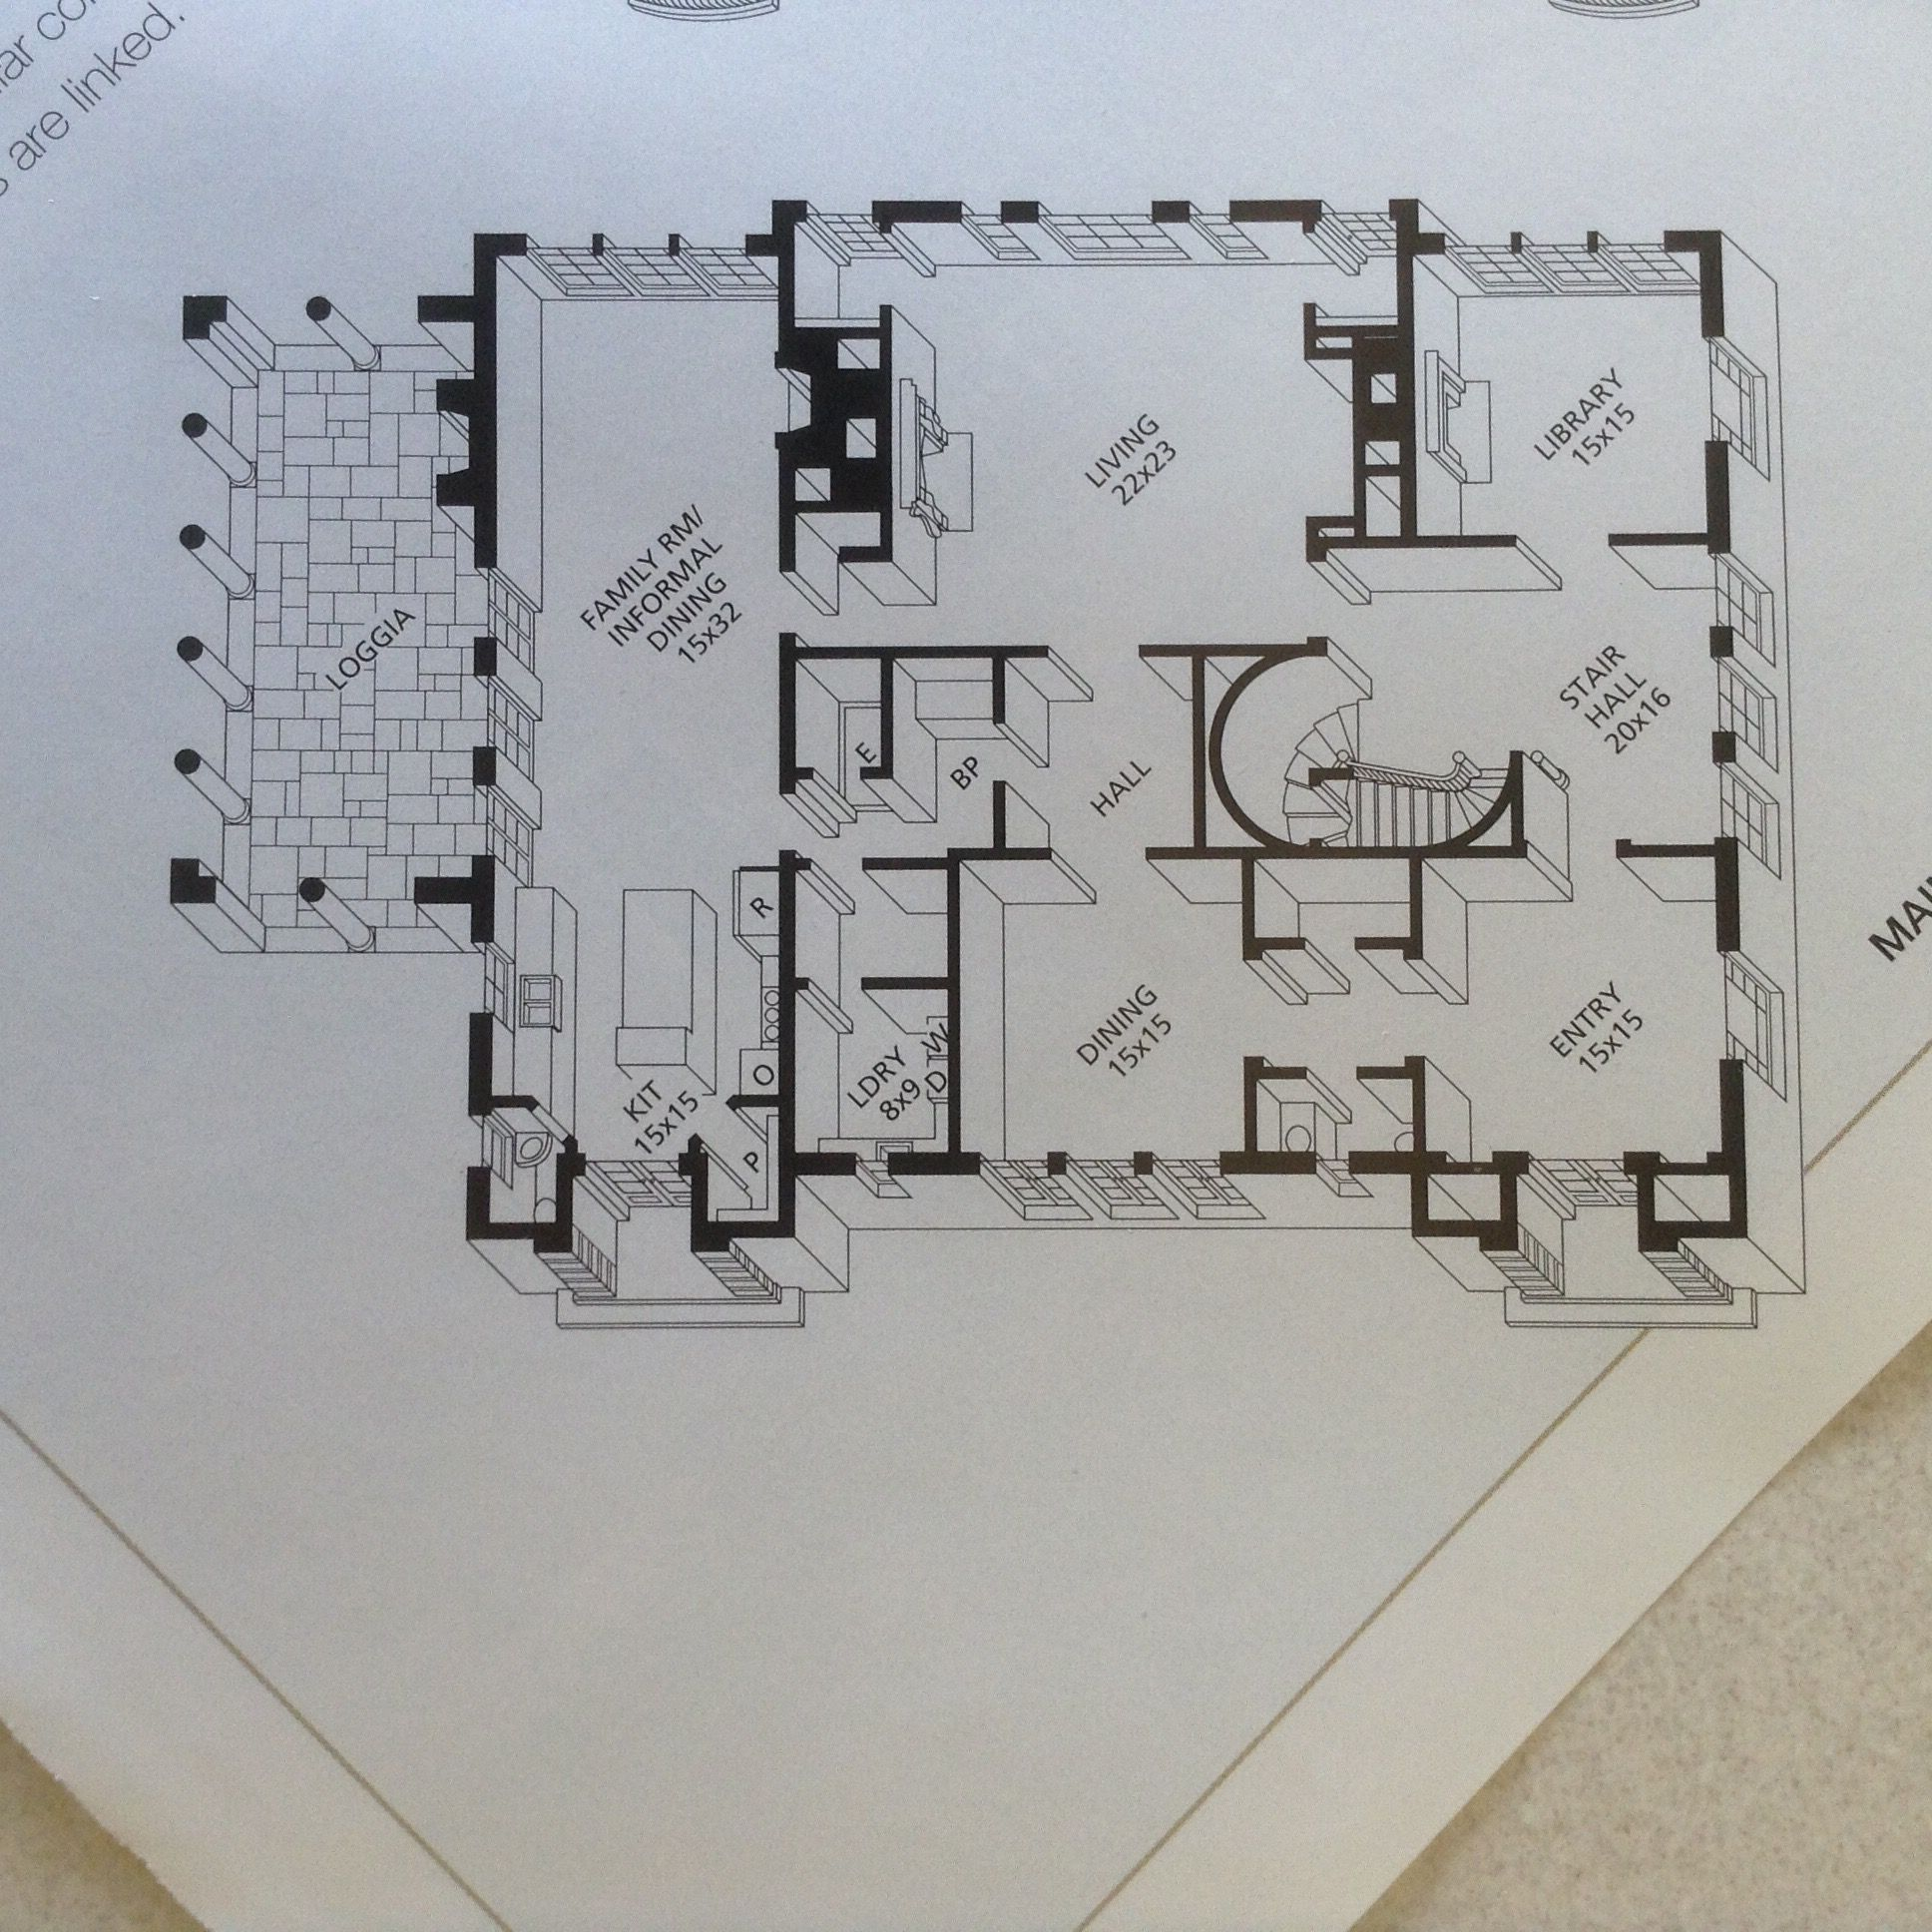 Harrison Residence Atlanta Vintage House Plans Apartment Floor Plans House Floor Plans